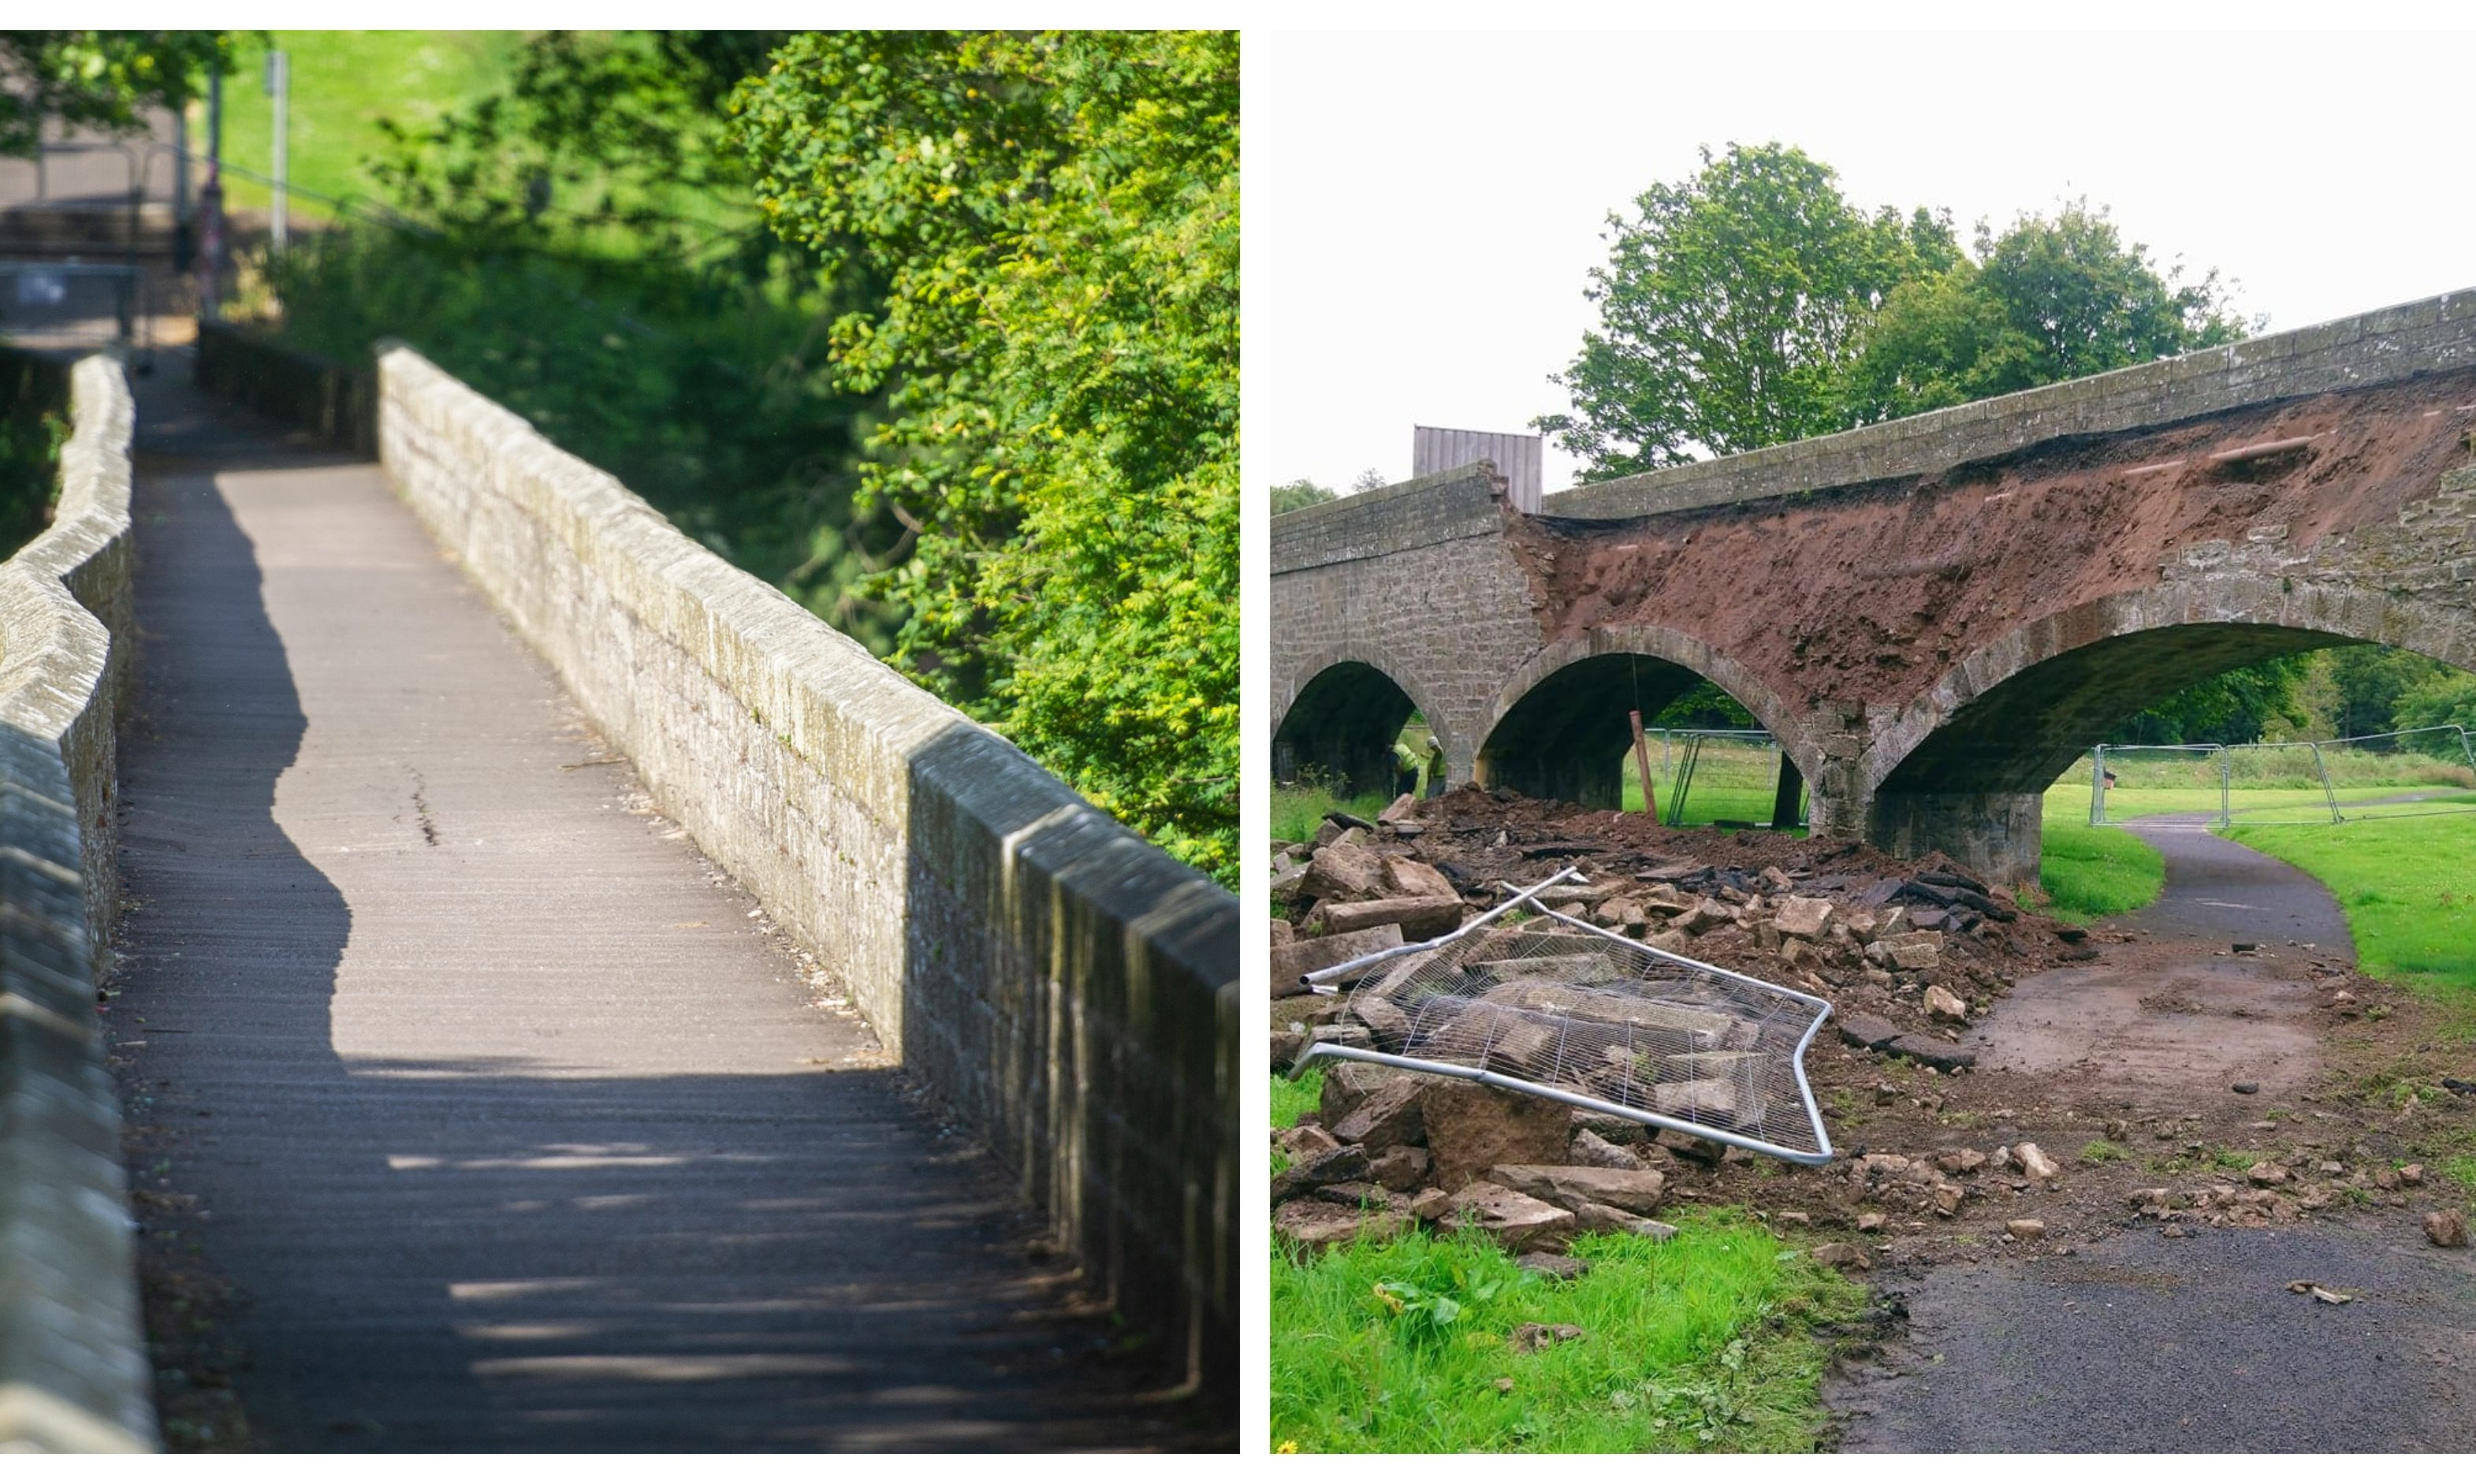 Finlathen Bridge shortly before and after the collapse